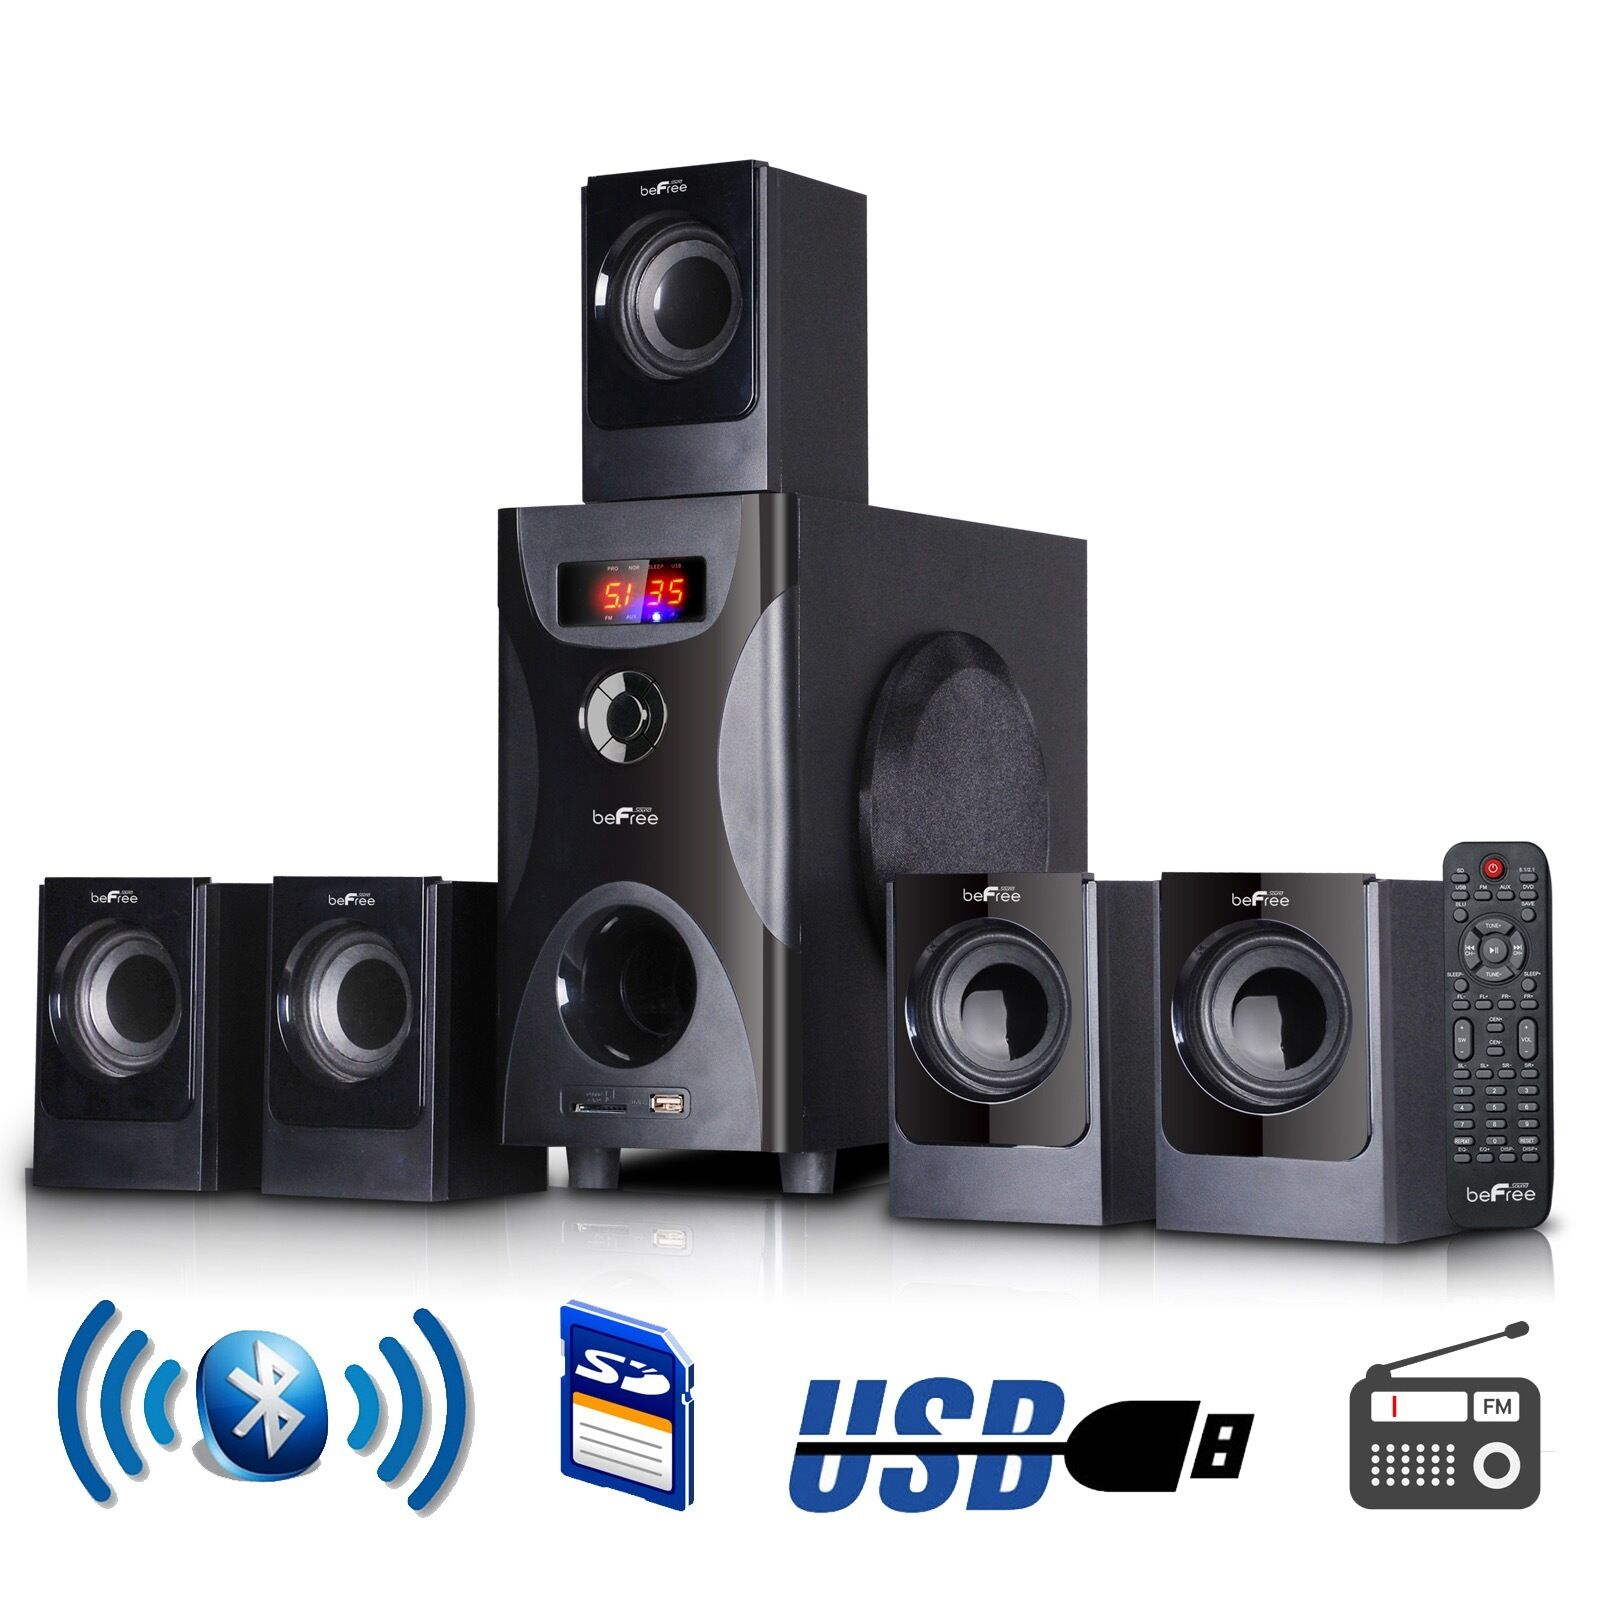 bluetooth befree sound bfs425 5 1 channel surround sound. Black Bedroom Furniture Sets. Home Design Ideas